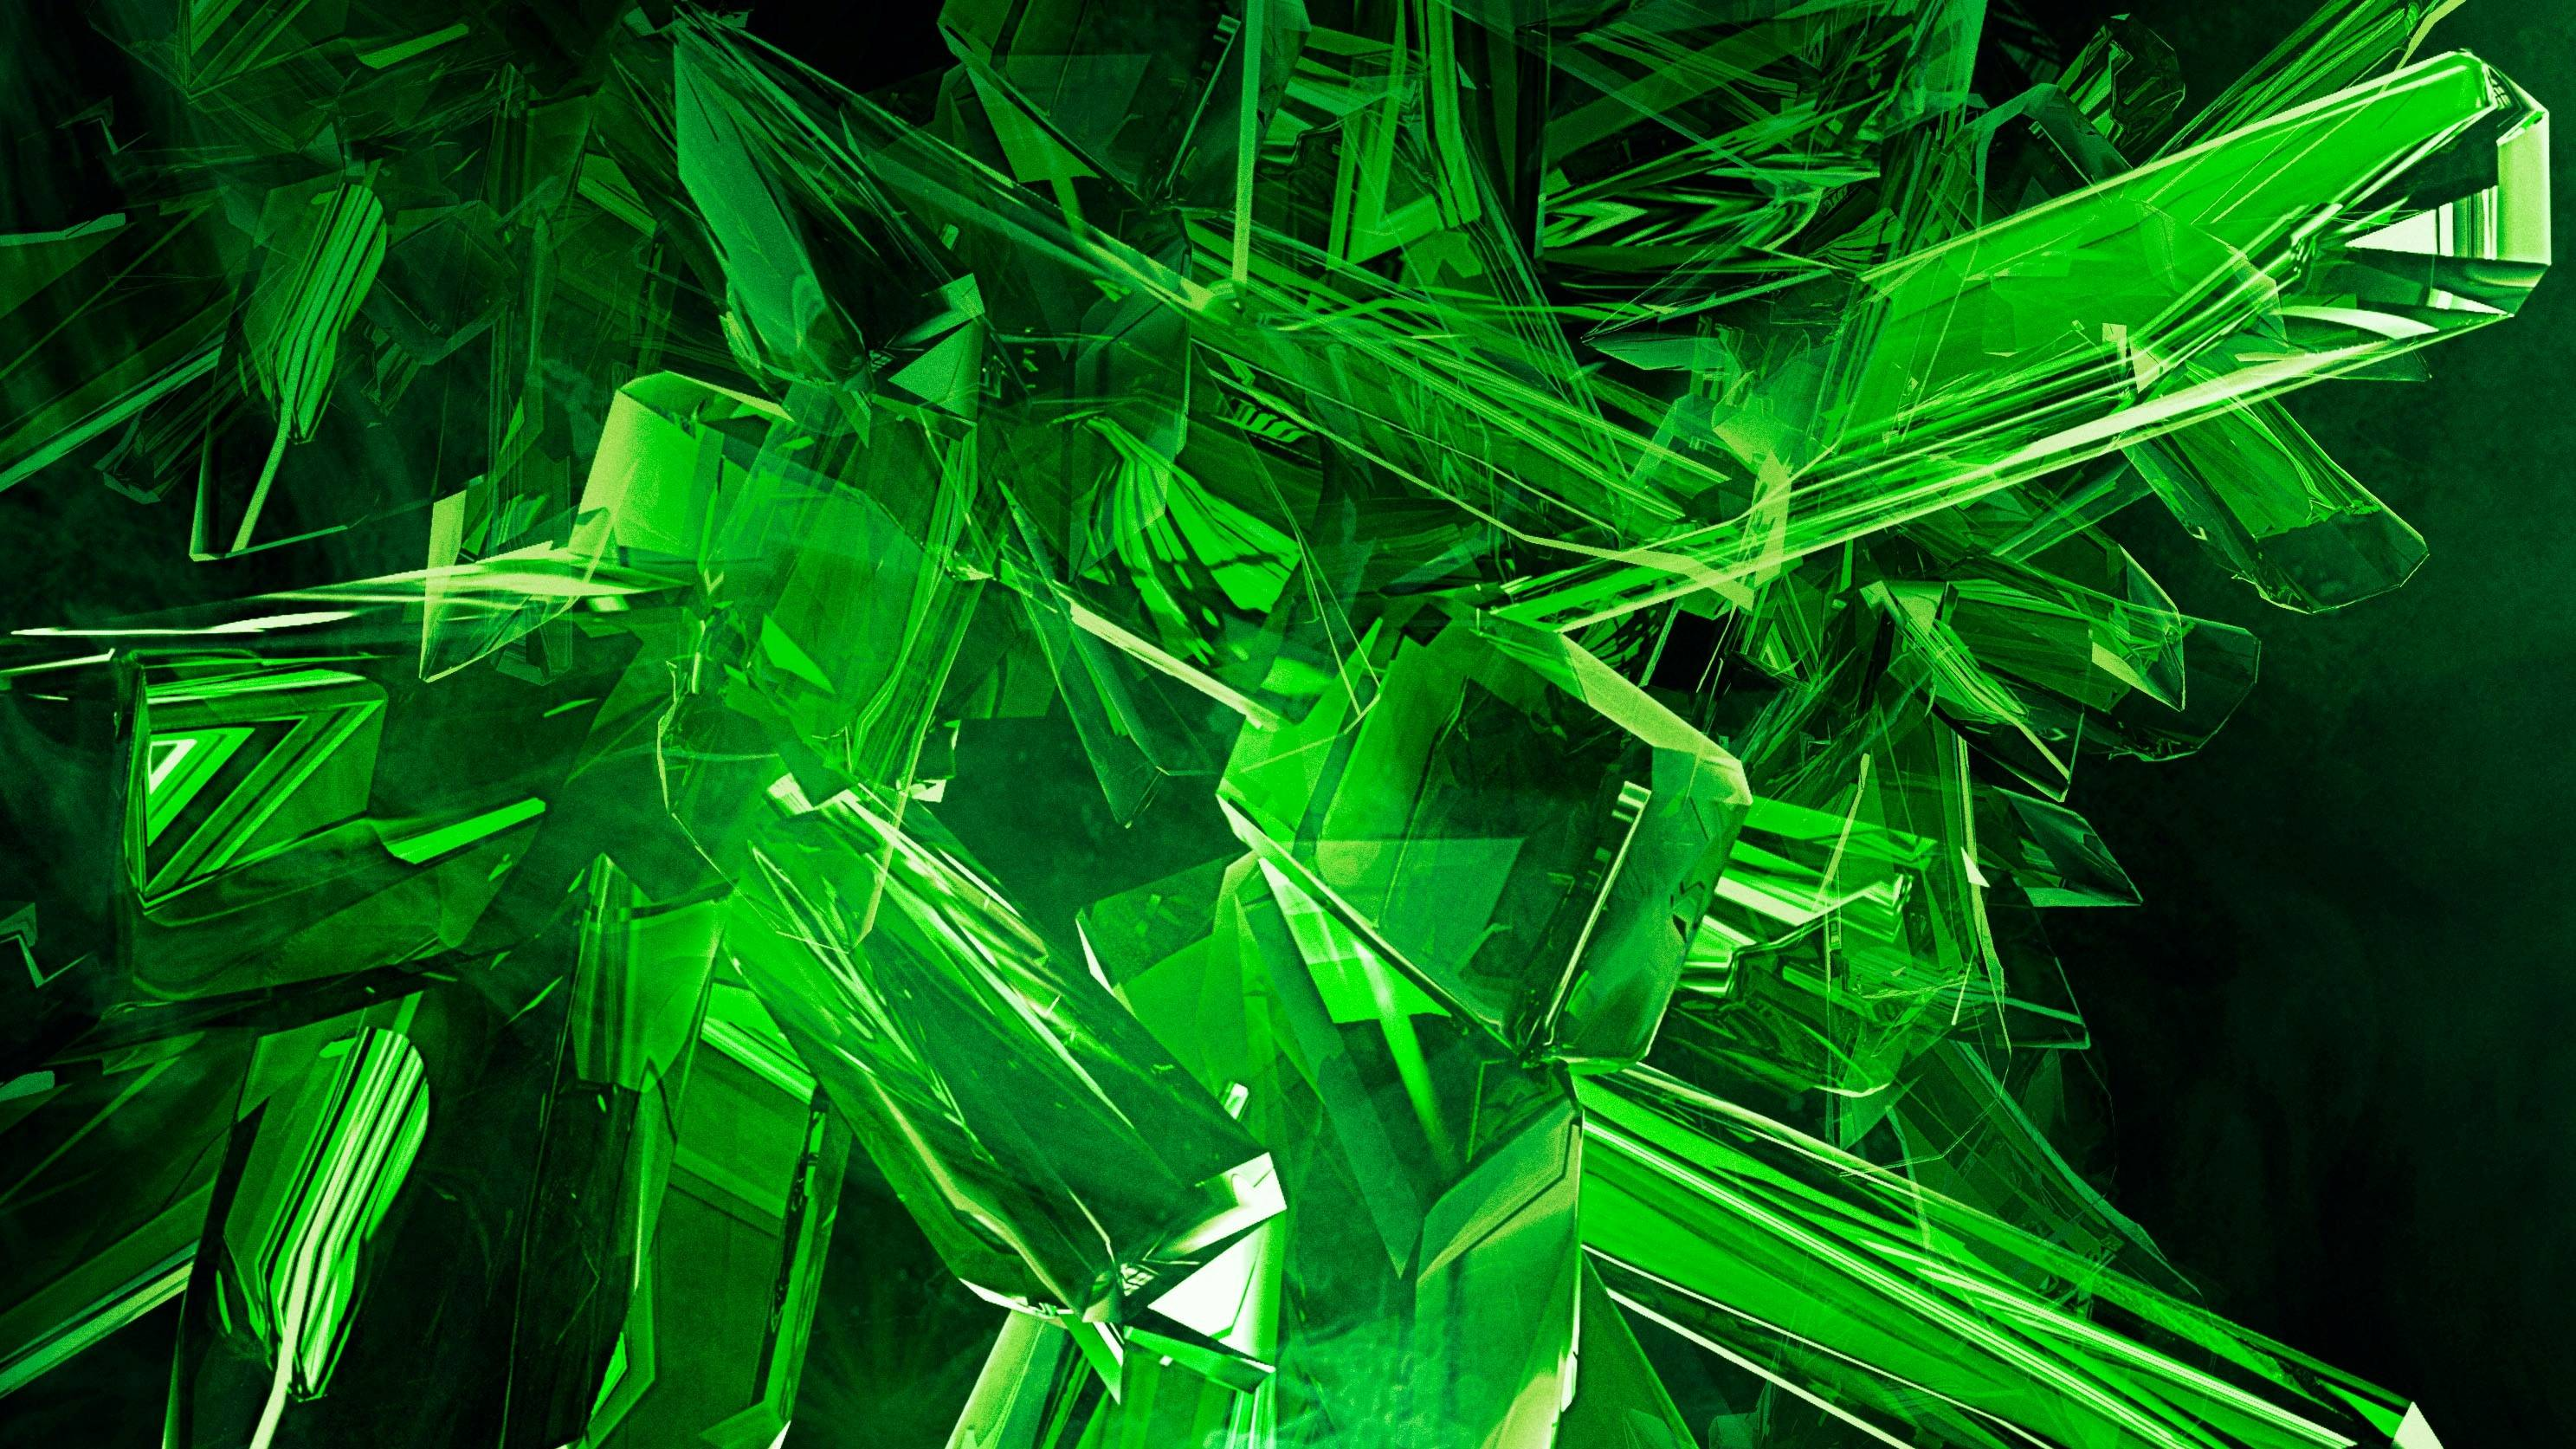 Cool hd backgrounds wallpaper cave 3d cool hd wallpaperhd wallpapers the home of hd pictures images voltagebd Images